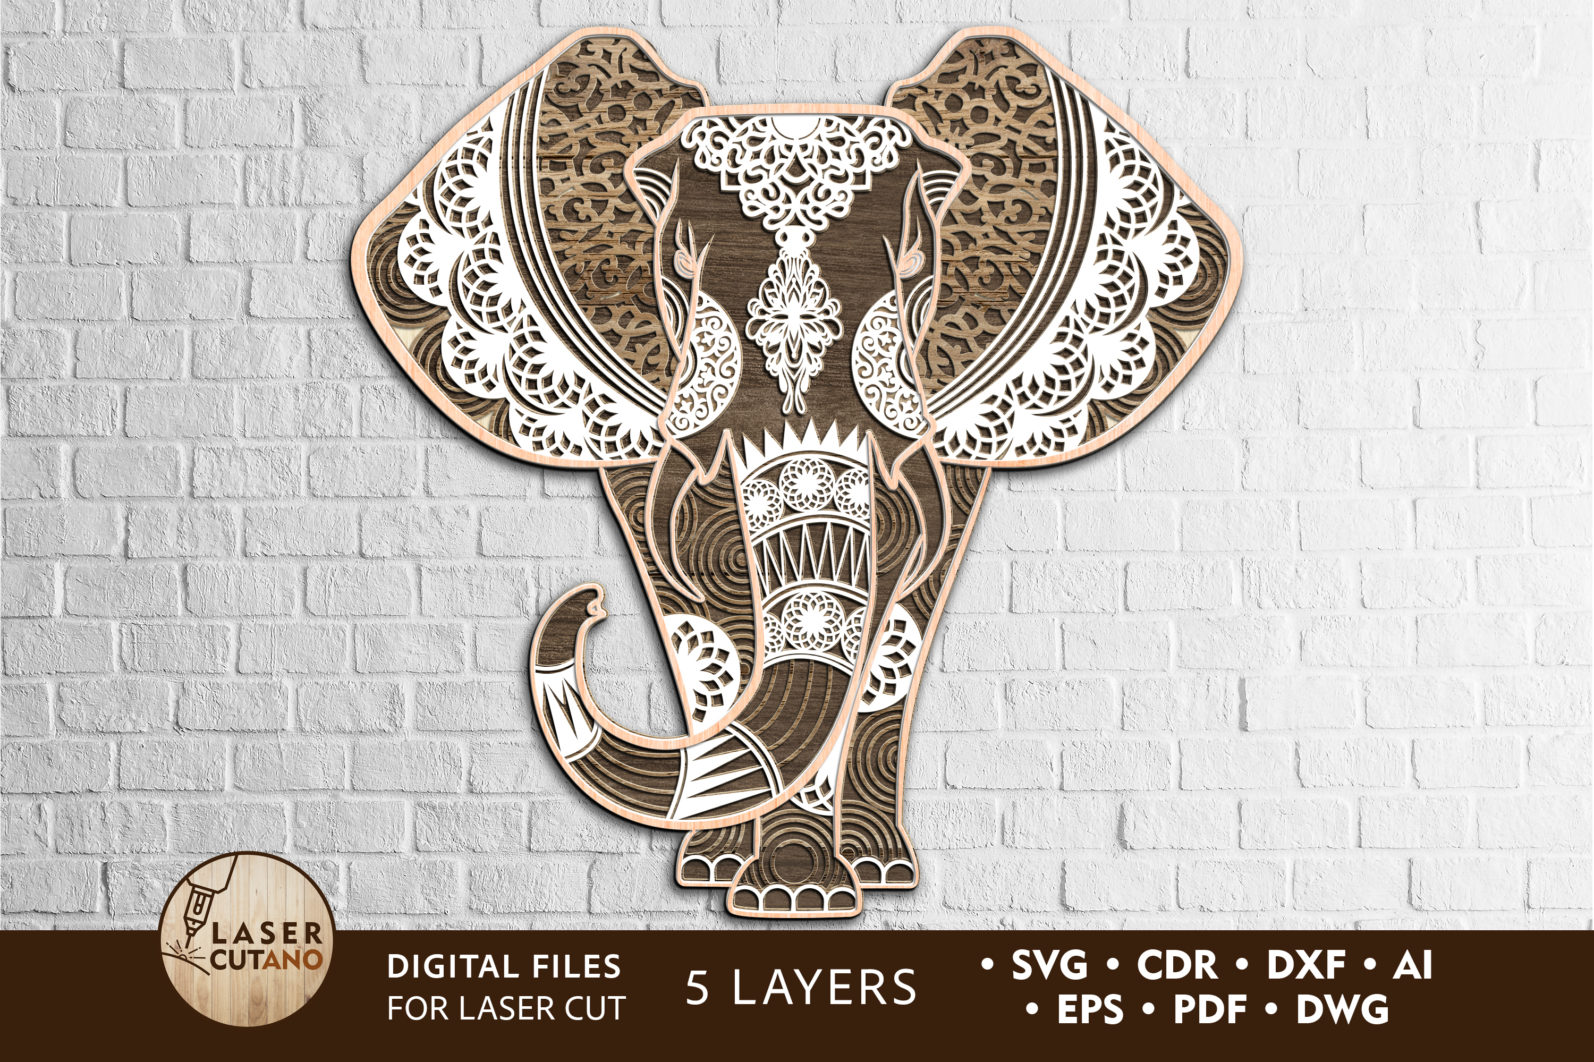 Multilayer Cut File ELEPHANT for Cricut or Laser Cut - elephant laser cut files lasercutano cover scaled -